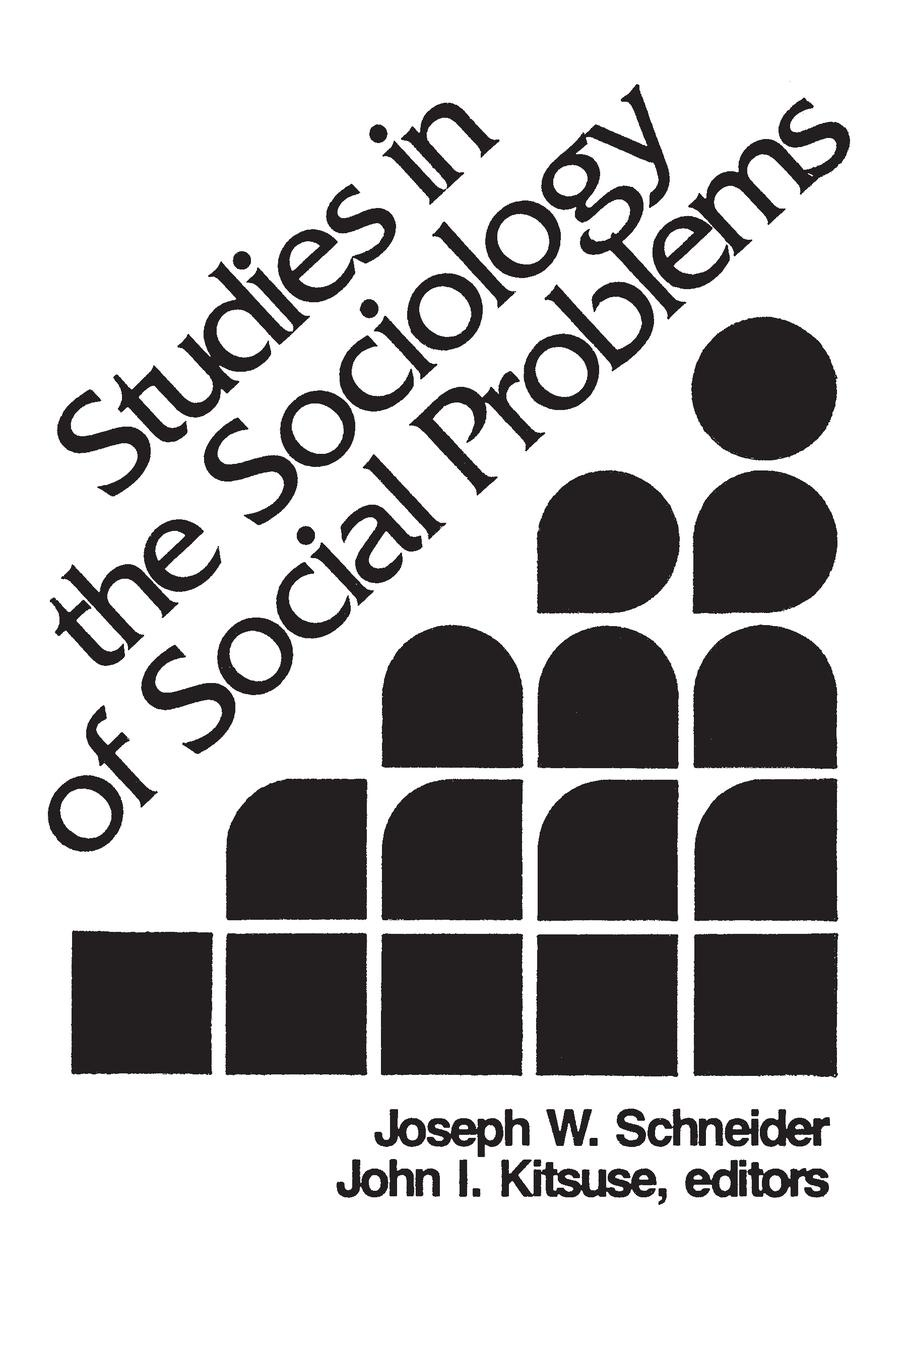 Joseph Schneider Studies in the Sociology of Social Problems charles manski identification problems in the social sciences paper